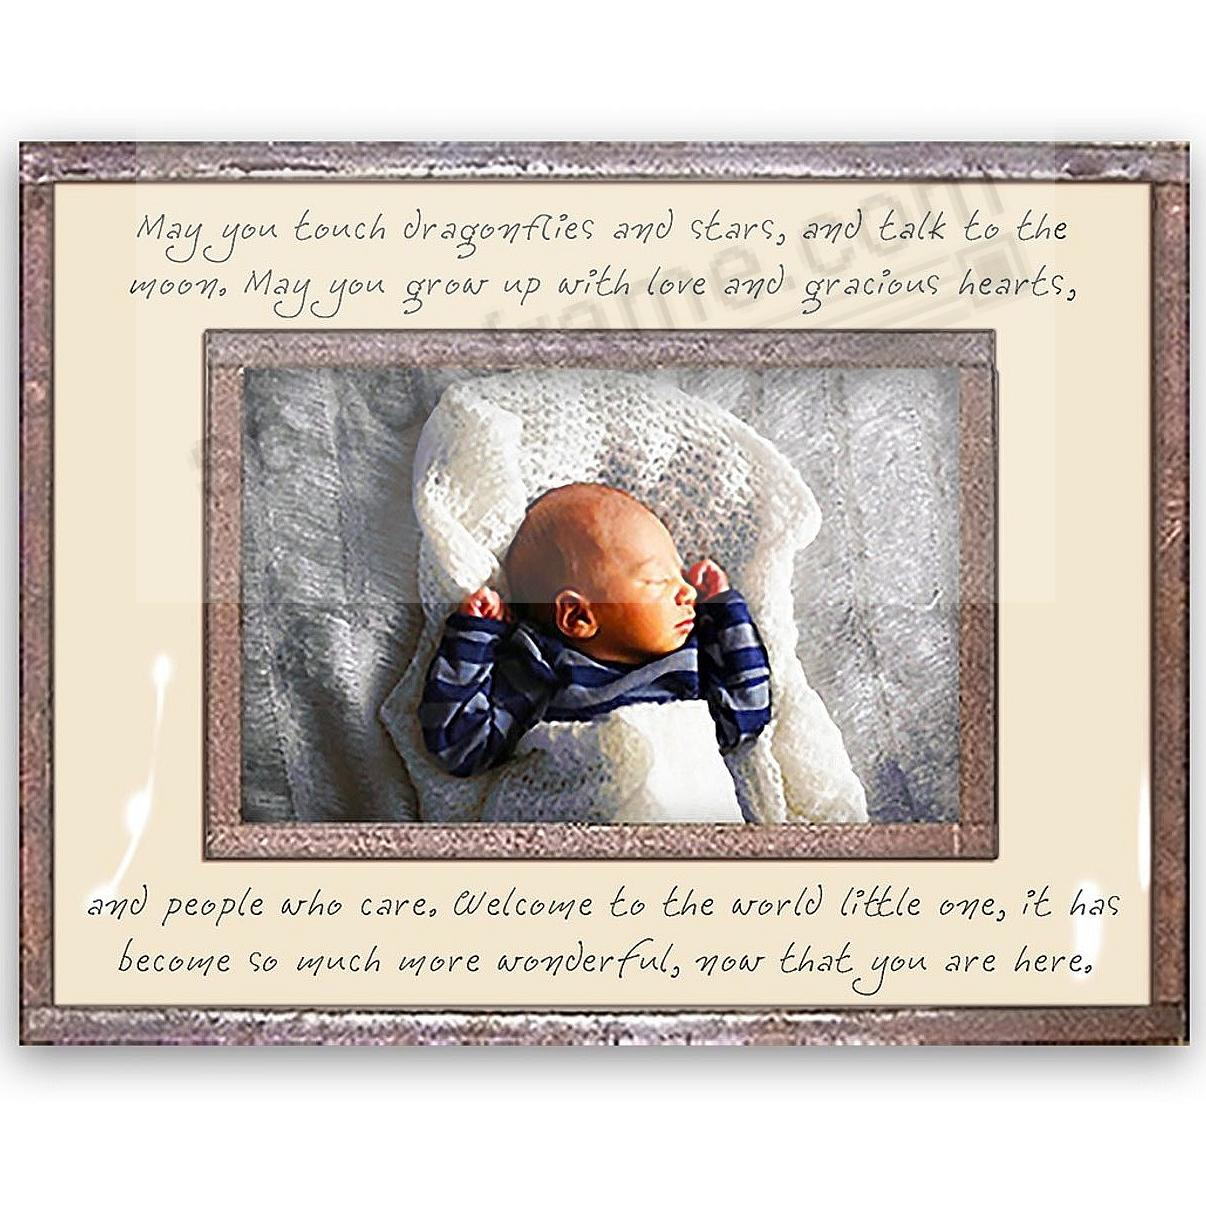 ... NOW THAT YOU ARE HERE Copper + Clear Glass by Ben's Garden® For A Newborn Gift